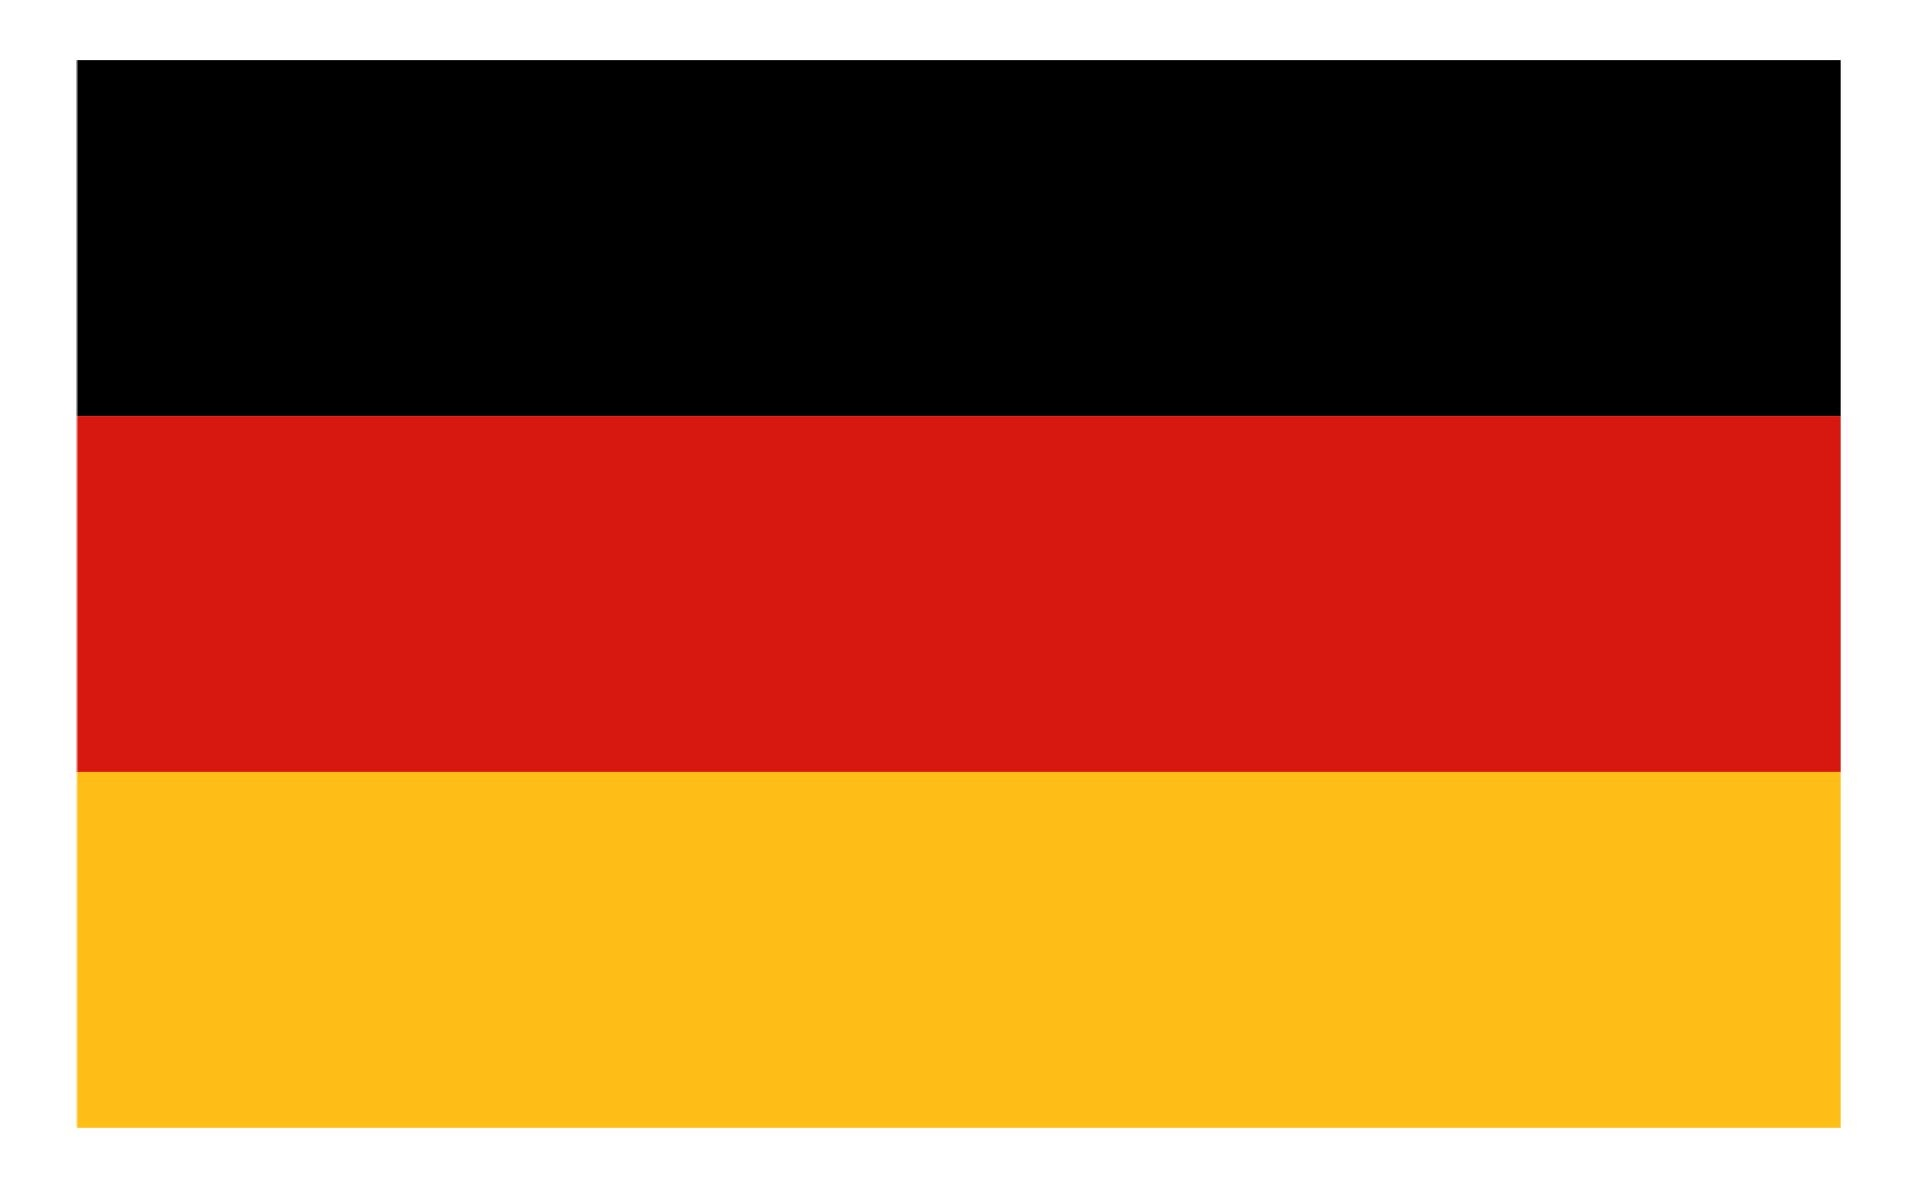 Germany Flag Image - ClipArt Best